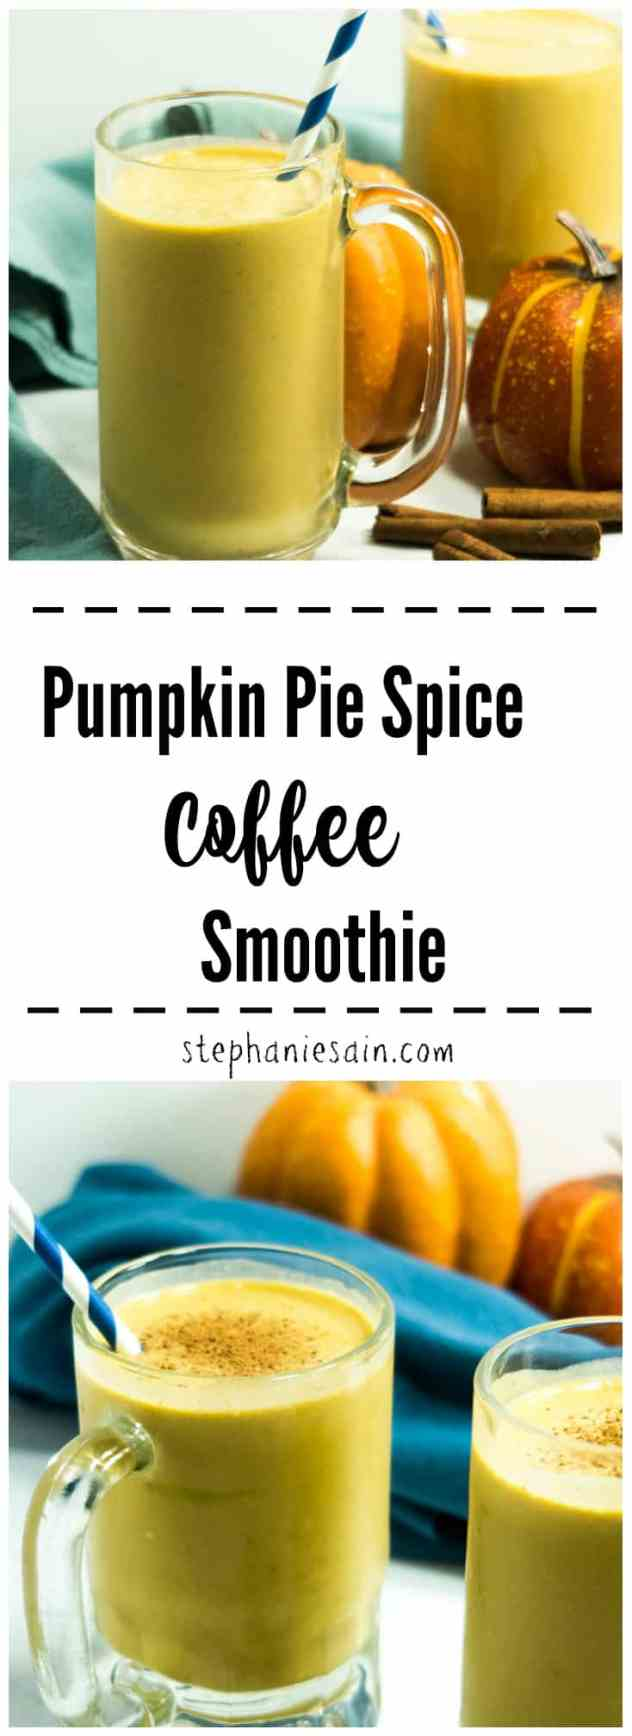 Pumpkin Pie Spice Coffee Smoothie is the perfect way to combine breakfast with your morning coffee. Easy to prepare and has all the flavors of Fall. Gluten free, No refined sugars, & vegan option.